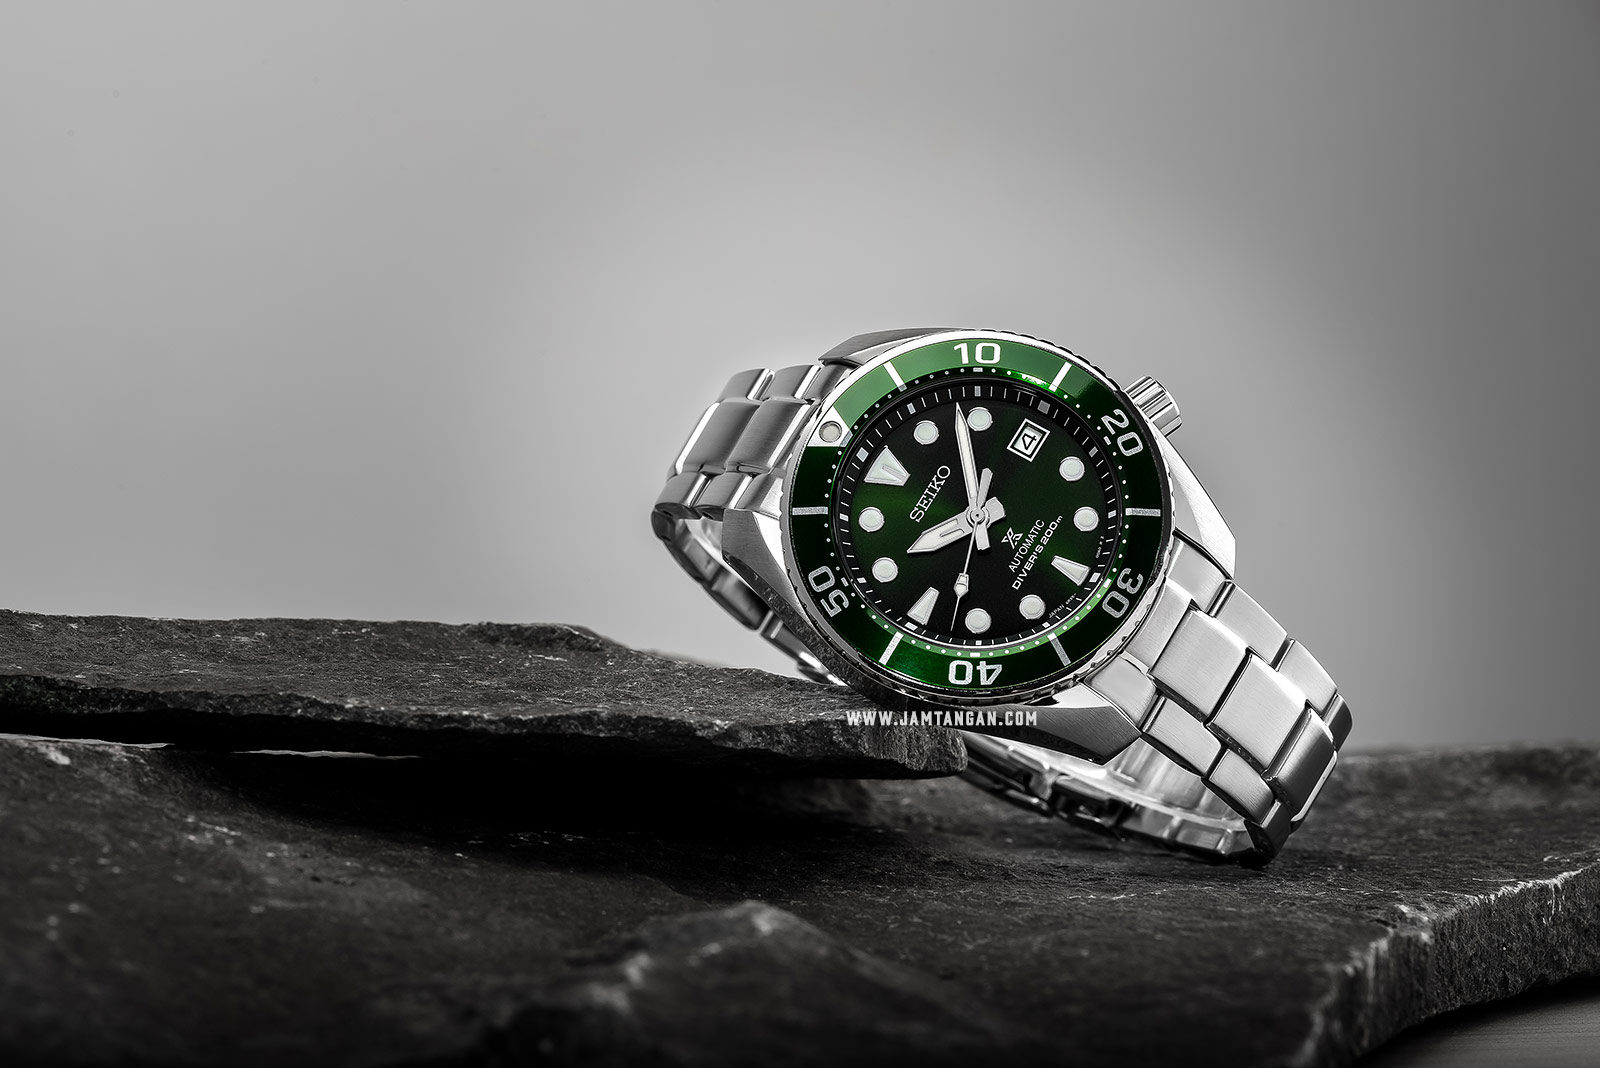 Seiko Prospex SPB103J1 Sumo Baselworld 2019 Automatic 200M Water Resistance Stainless Steel Strap Machtwatch